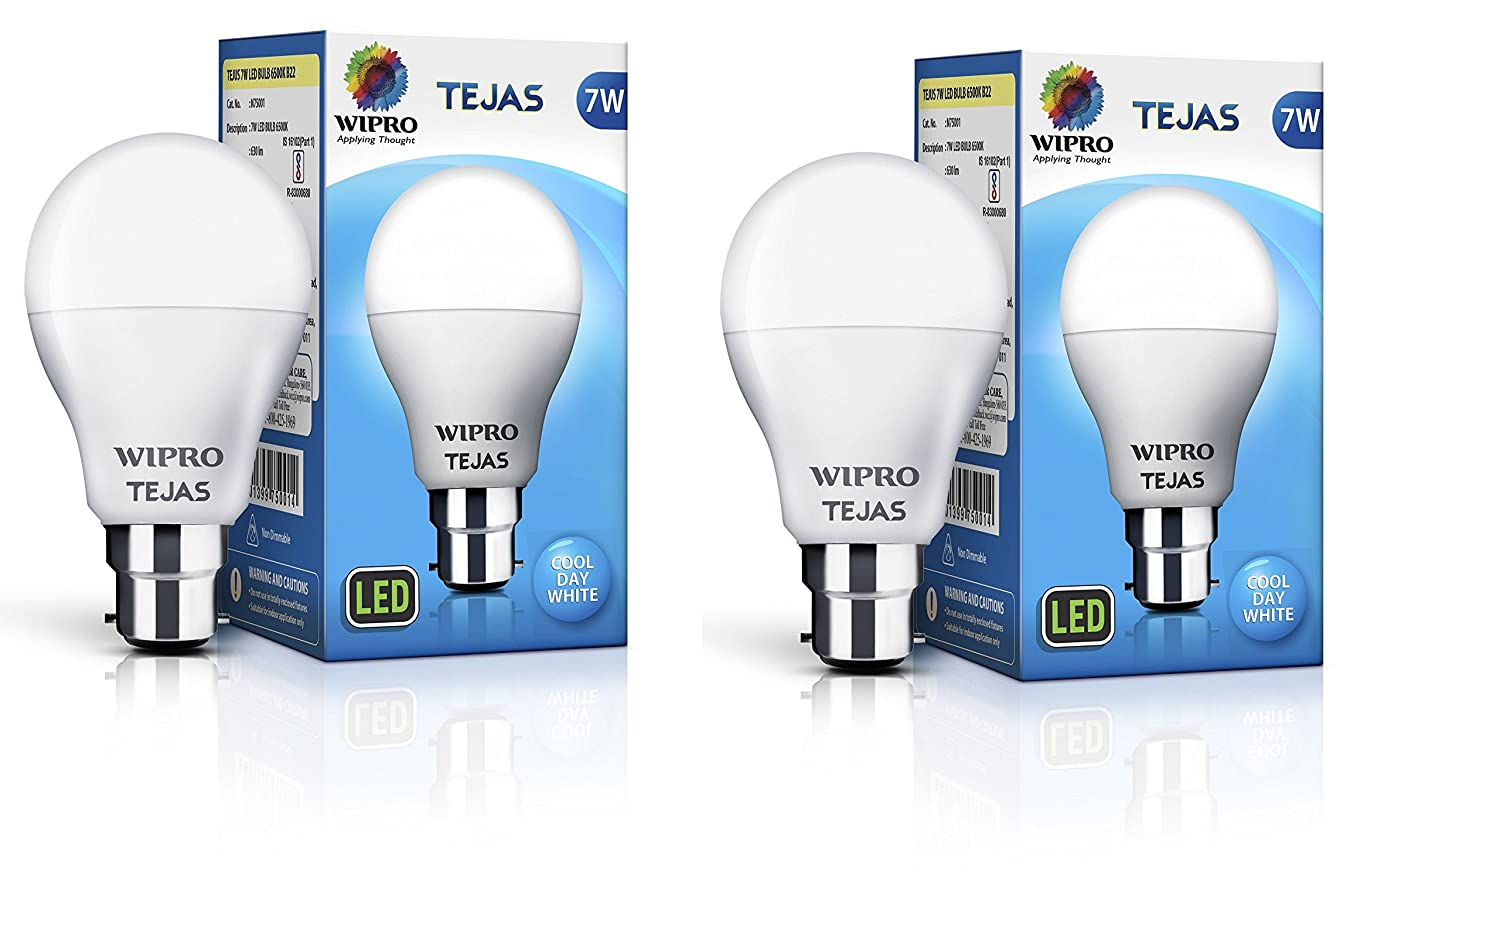 Upto 55% off On LED Bulbs By Amazon | Wipro 7W LED Bulb Cool Day White - Tejas (Pack of 2) @ Rs.269